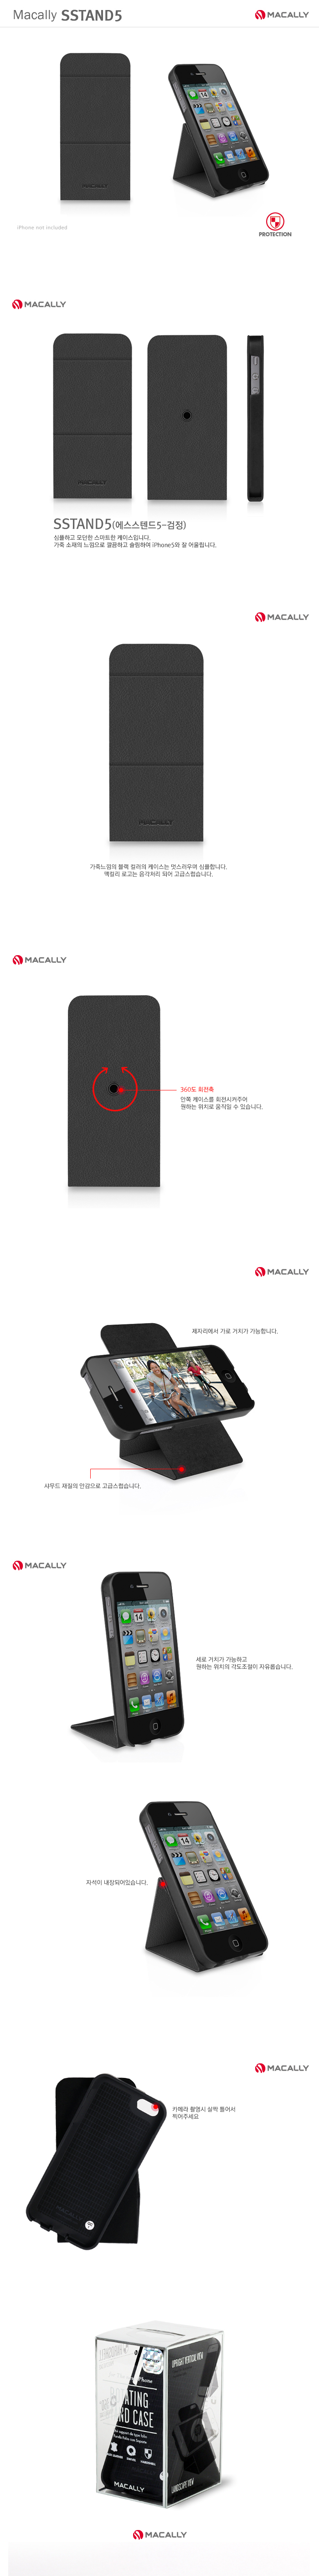 Macally iPhone 5 Case Skin -  Top Flip Case with Magnetic Stand Feature,  Hold the phone vertically or horizontally